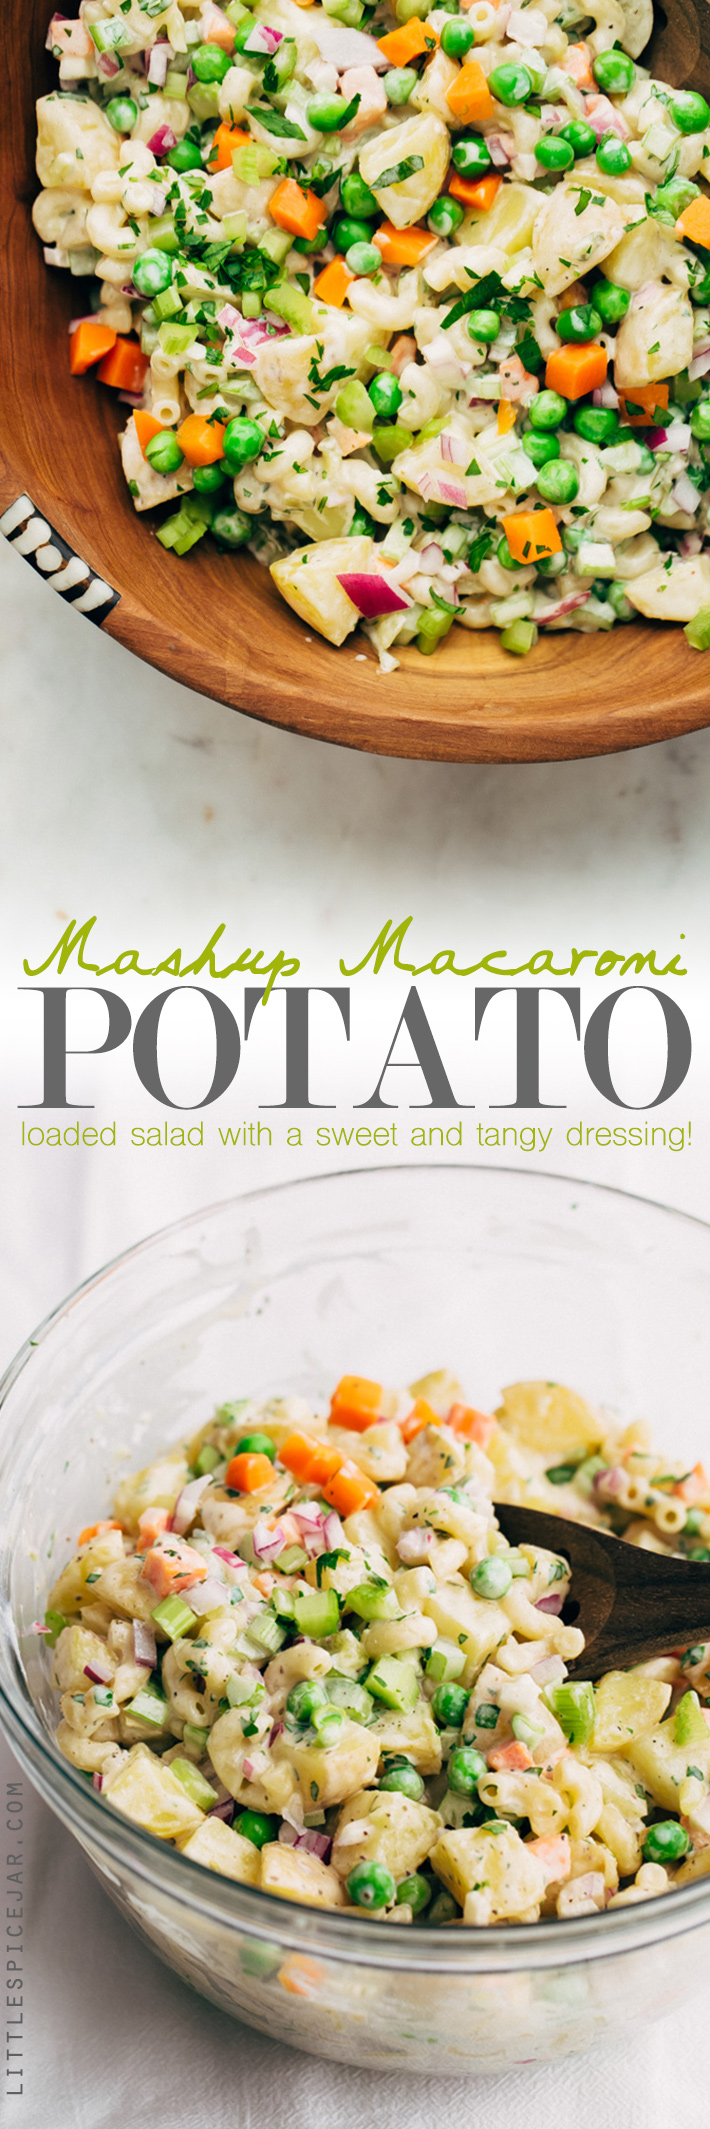 Mashup Macaroni Potato Salad - my family's favorite potato salad recipe! This is easy to make and is LOADED with flavor! #potatosalad #salad #macaronisalad #picnic #barbecue | Littlespicejar.com